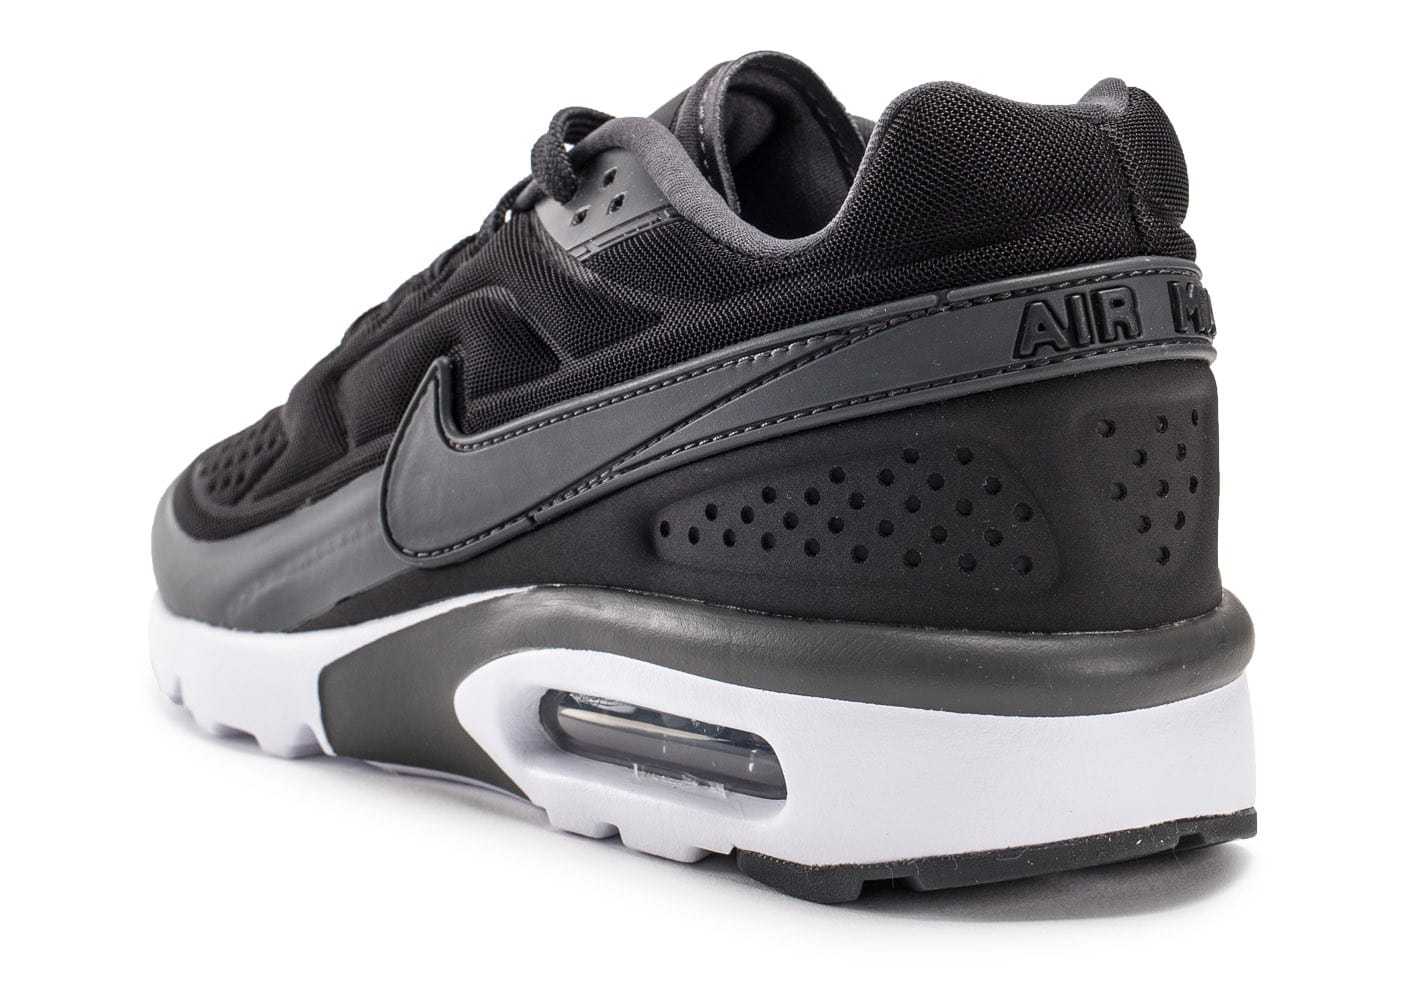 Nike Air Max BW Ultra noir anthracite Chaussures Baskets